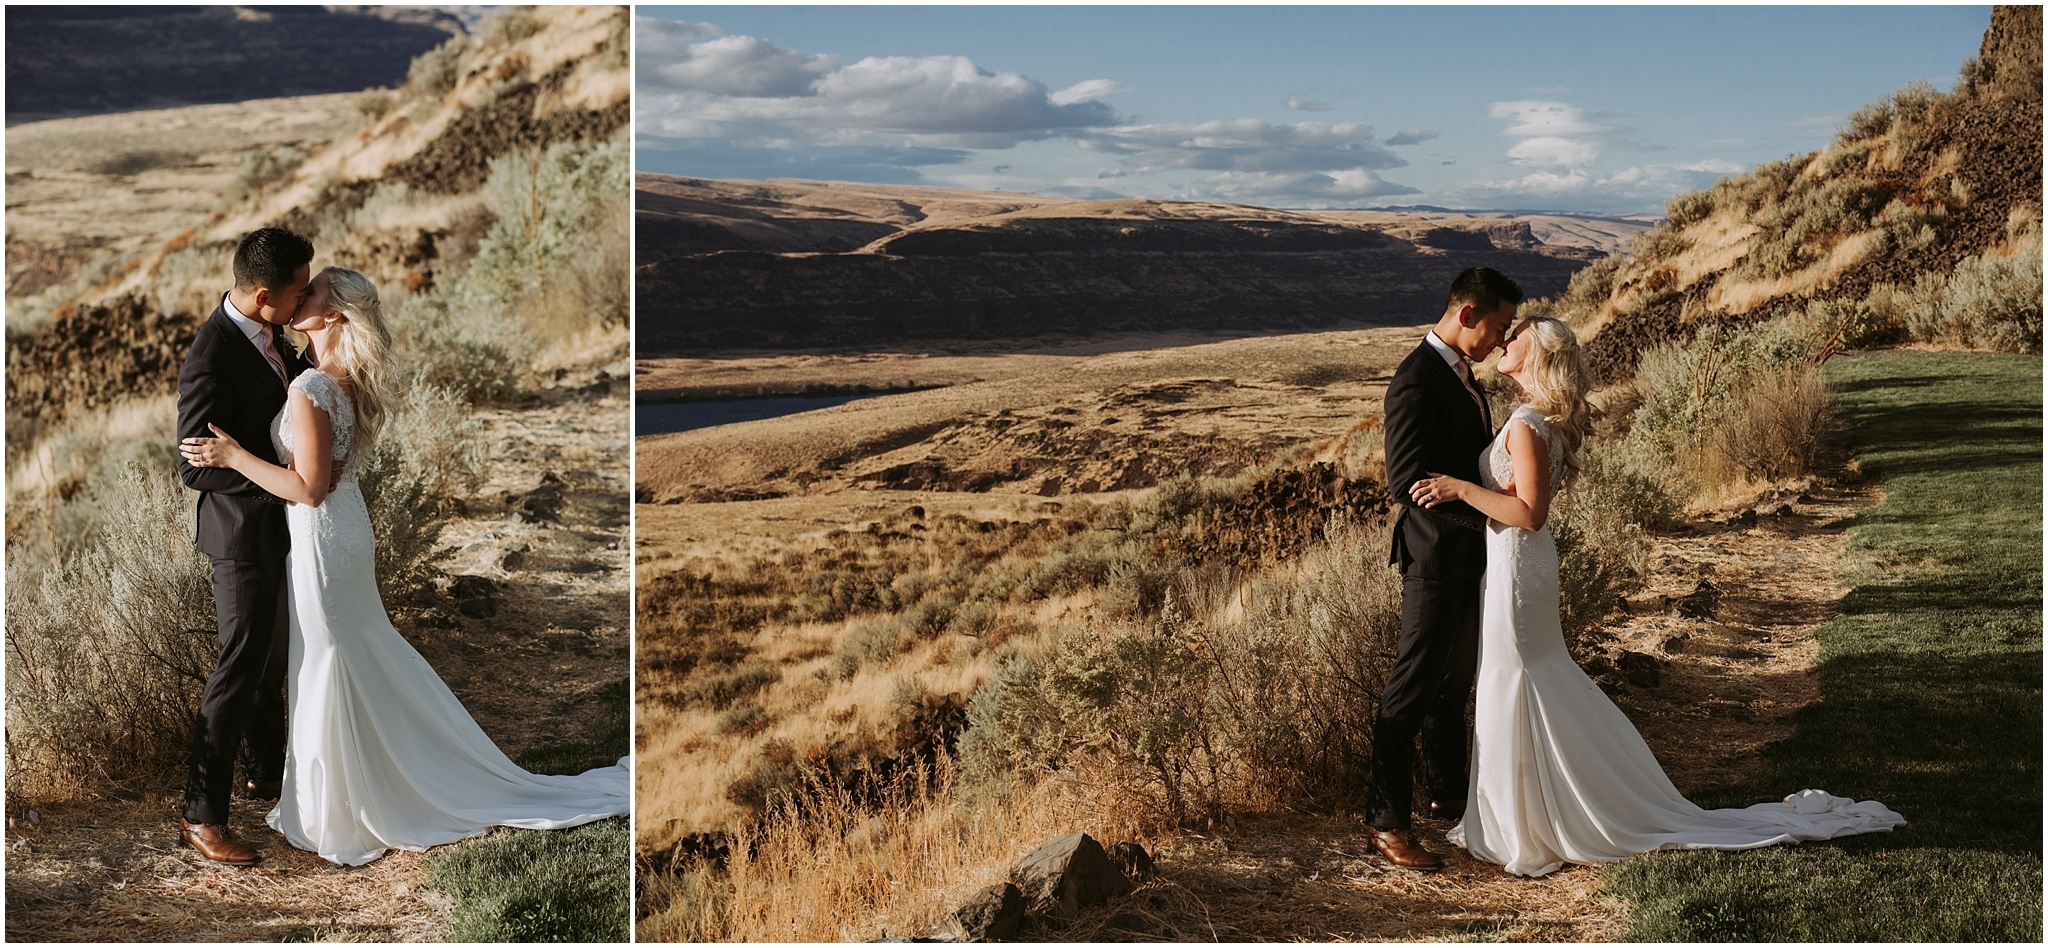 Cave B Winery spring wedding, Eastern Washington Engagement Photos, Washington Engagement Photographer, Washington wedding photographer, Best Washington elopement photographers, Best Washington Wedding photographers, Washington boho bride, elopement photos in eastern washington, adventurous Engagement session, Washington hippie bride, cave b winery wedding photographers, adventure elopement photographer, vantage washington engagement photography, vantage washington elopement photography